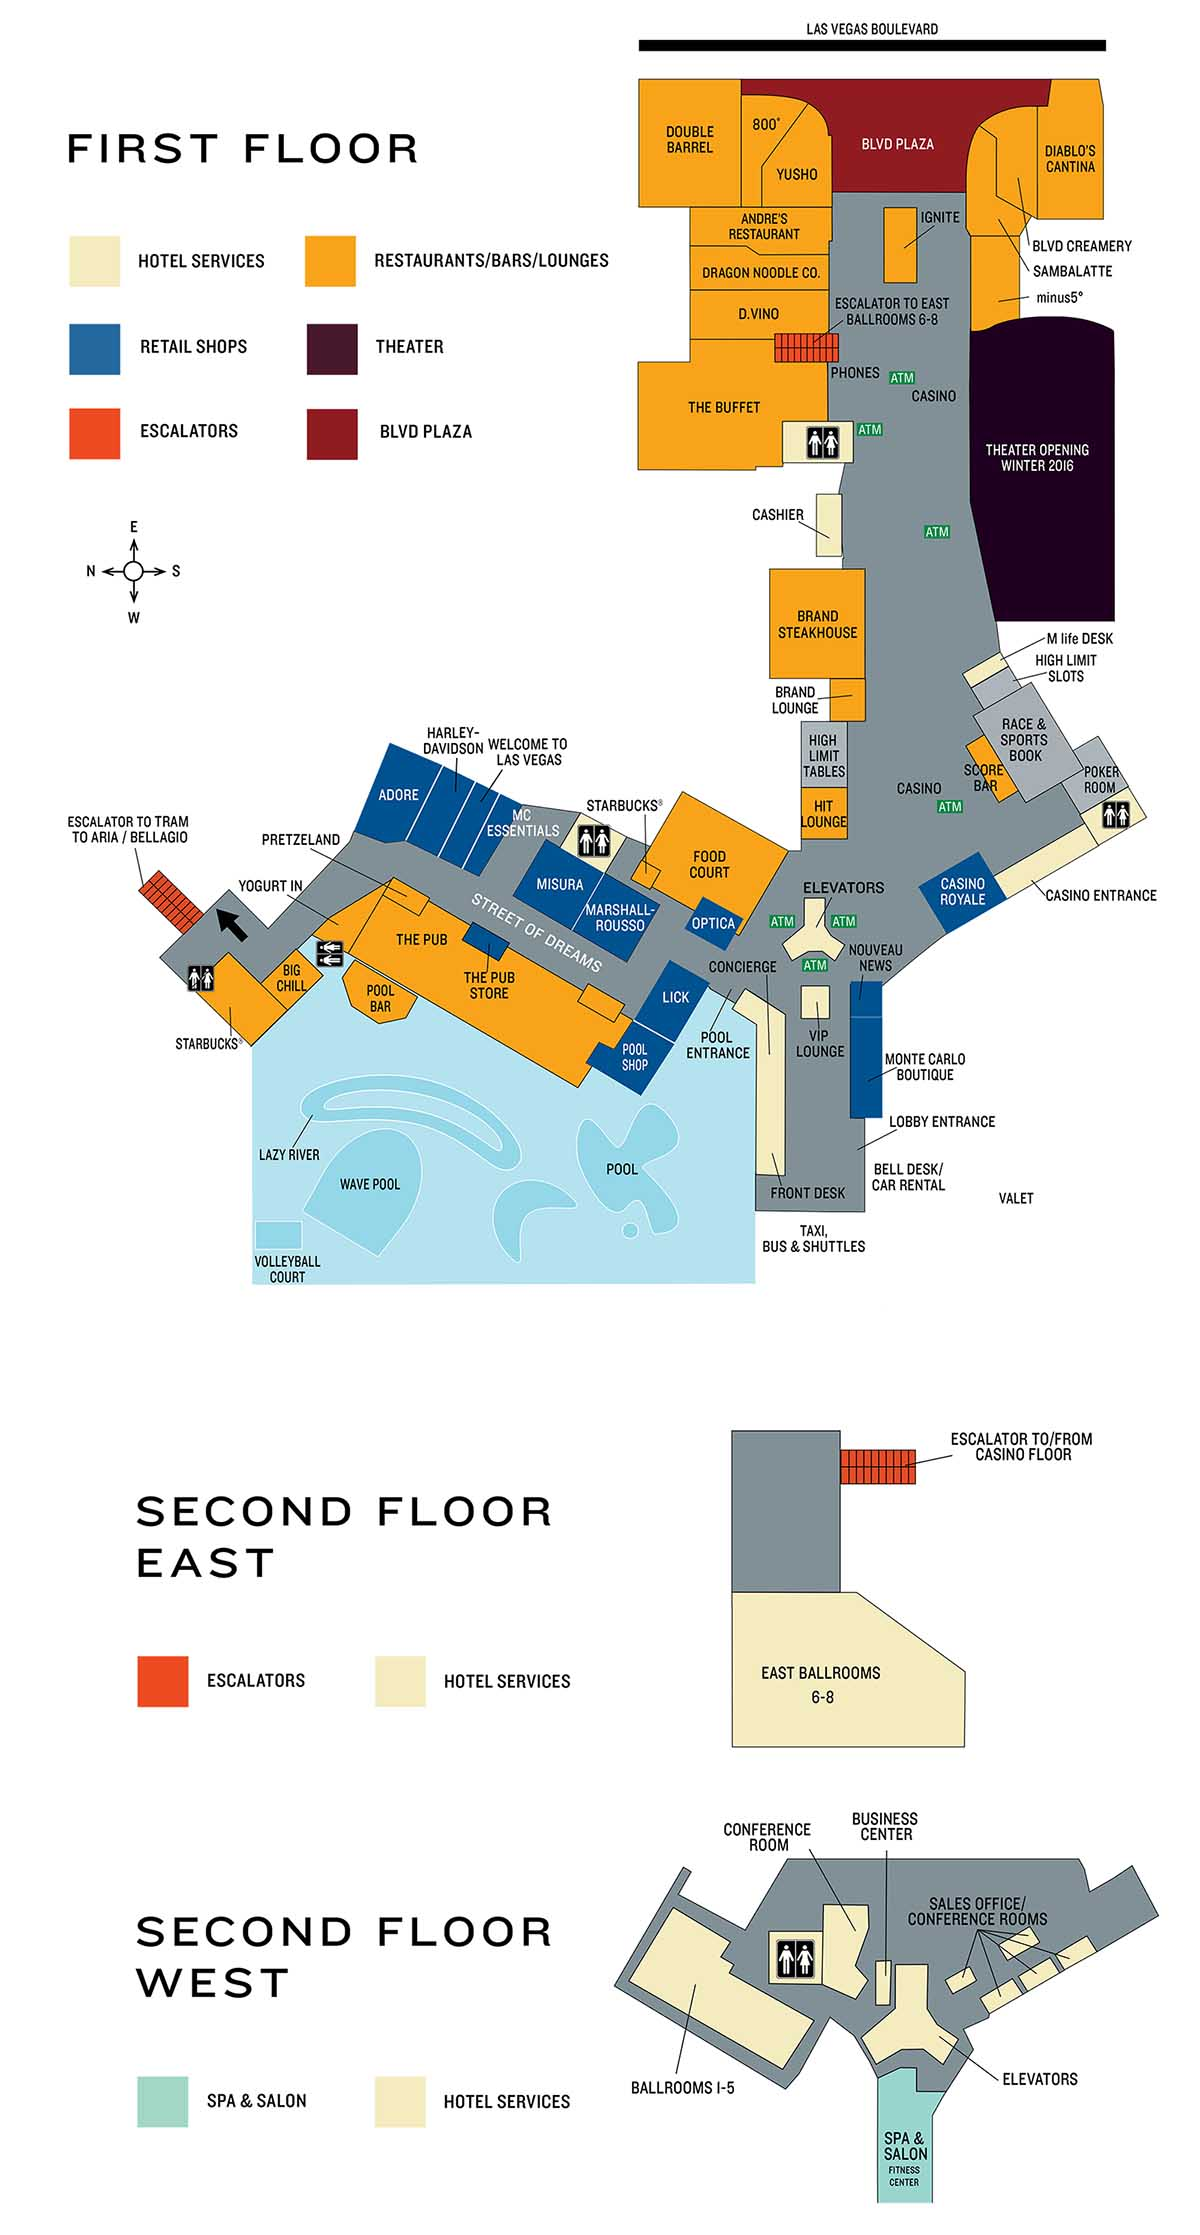 monte carlo casino property map & floor plans - las vegas